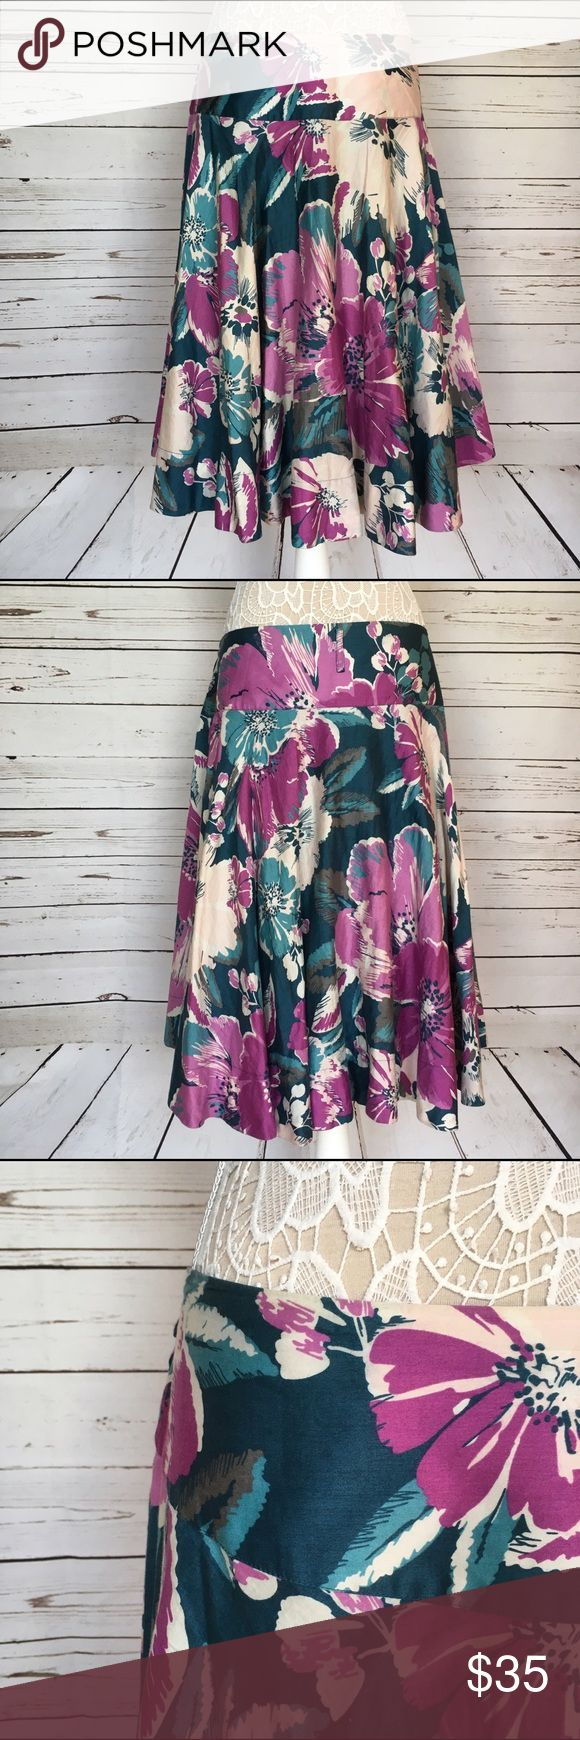 🎉Host Pick!🎉 Monsoon Skirt 🎉Host Pick!🎉 Gorgeous circle skirt from UK brand Monsoon. This full, knee-length skirt is 100% cotton with a vibrant teal and magenta floral print. Fully lined with a teal cotton petticoat. Flattering wide waistband and fabric belt loops. Size is a UK 20, which is equivalent to a US 16. Excellent used condition. Fast shipping. Monsoon Skirts A-Line or Full